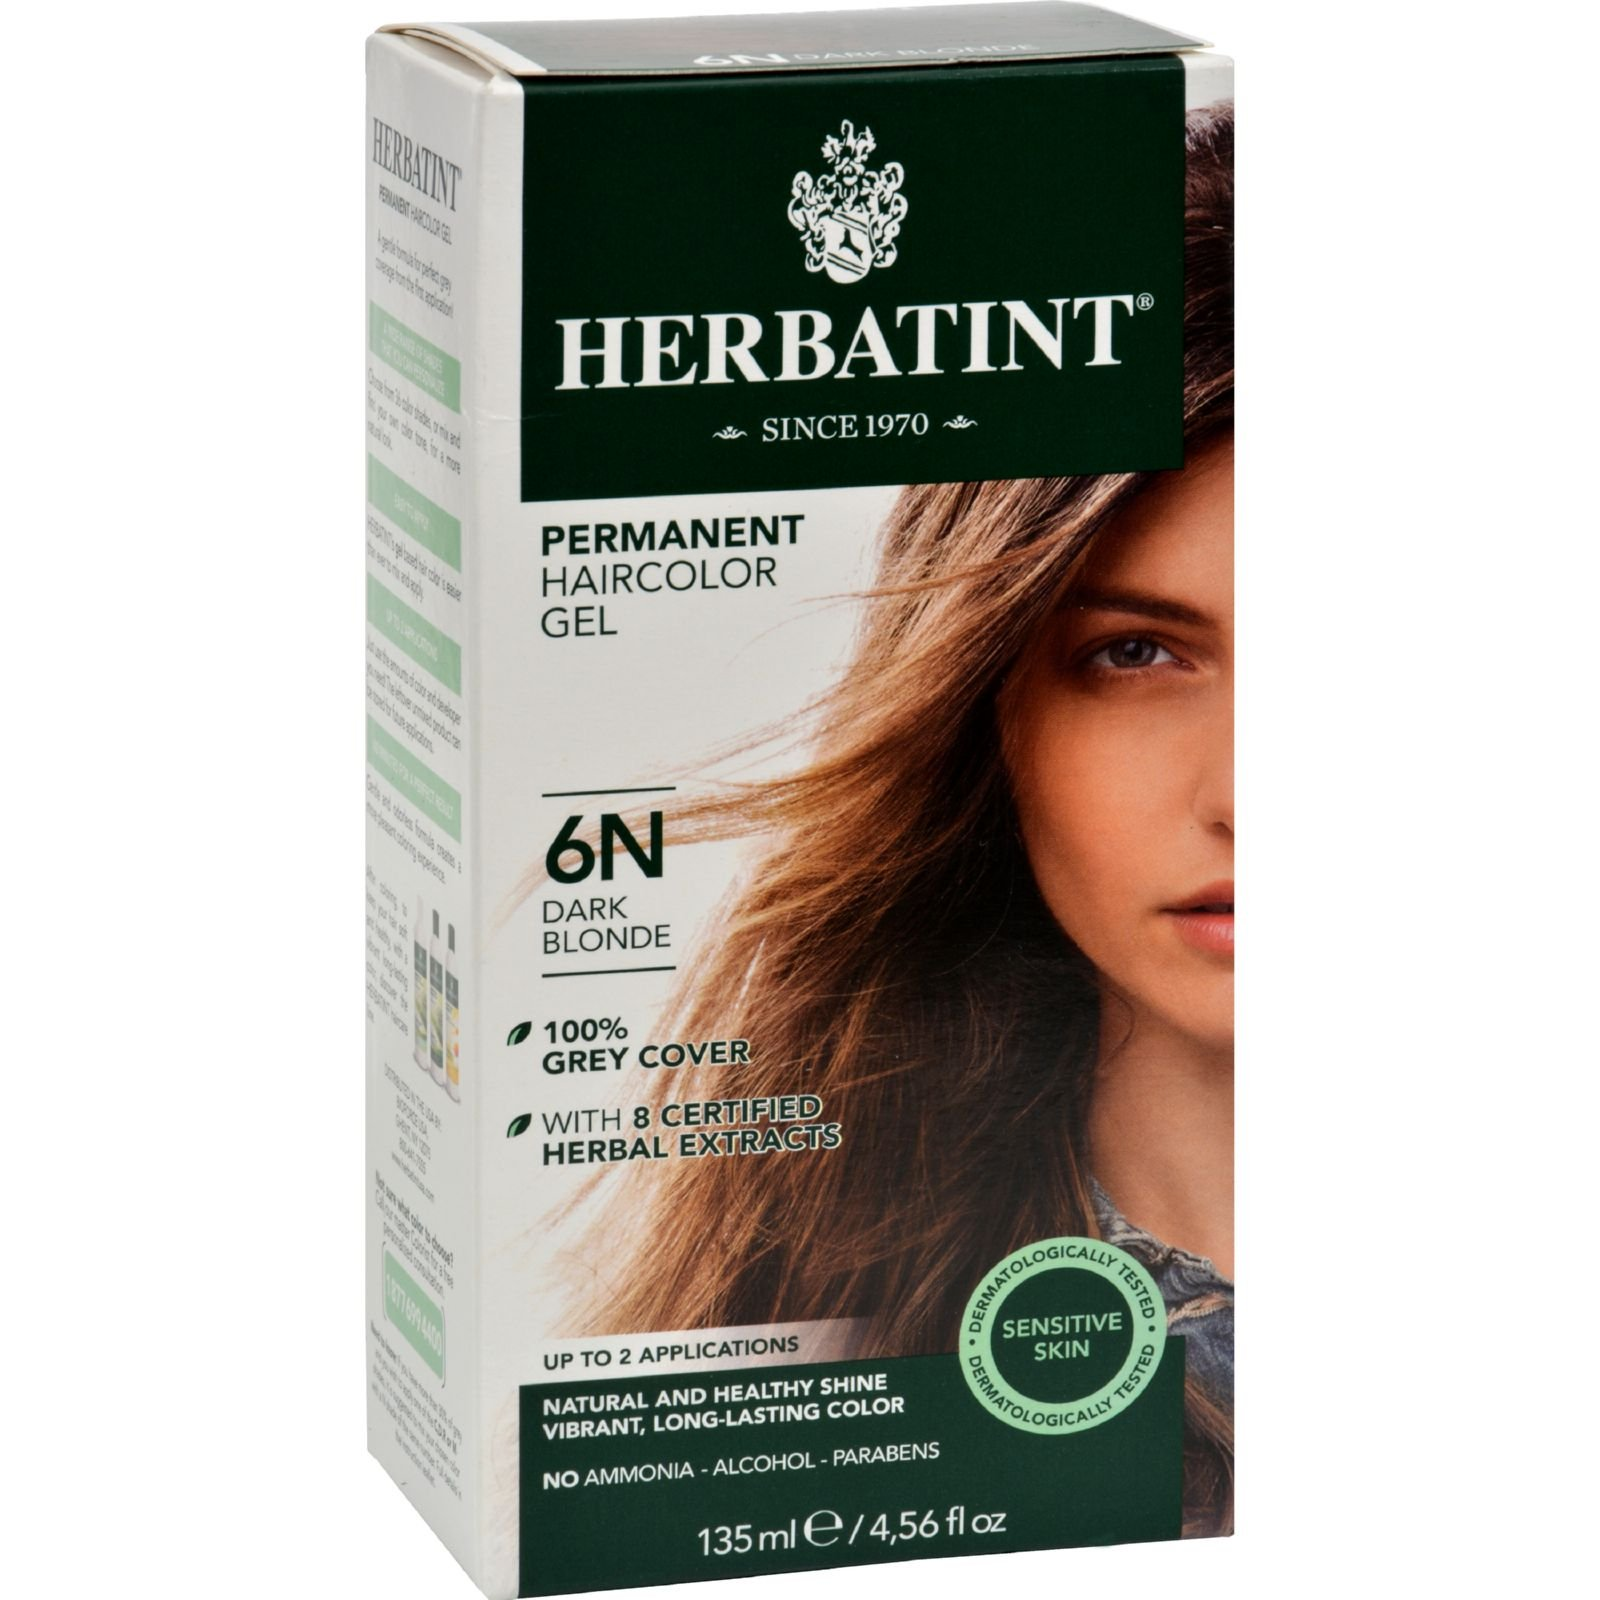 Herbatint Permanent Herbal Haircolour Gel 6N Dark Blonde - 135 ml (Pack of 4)